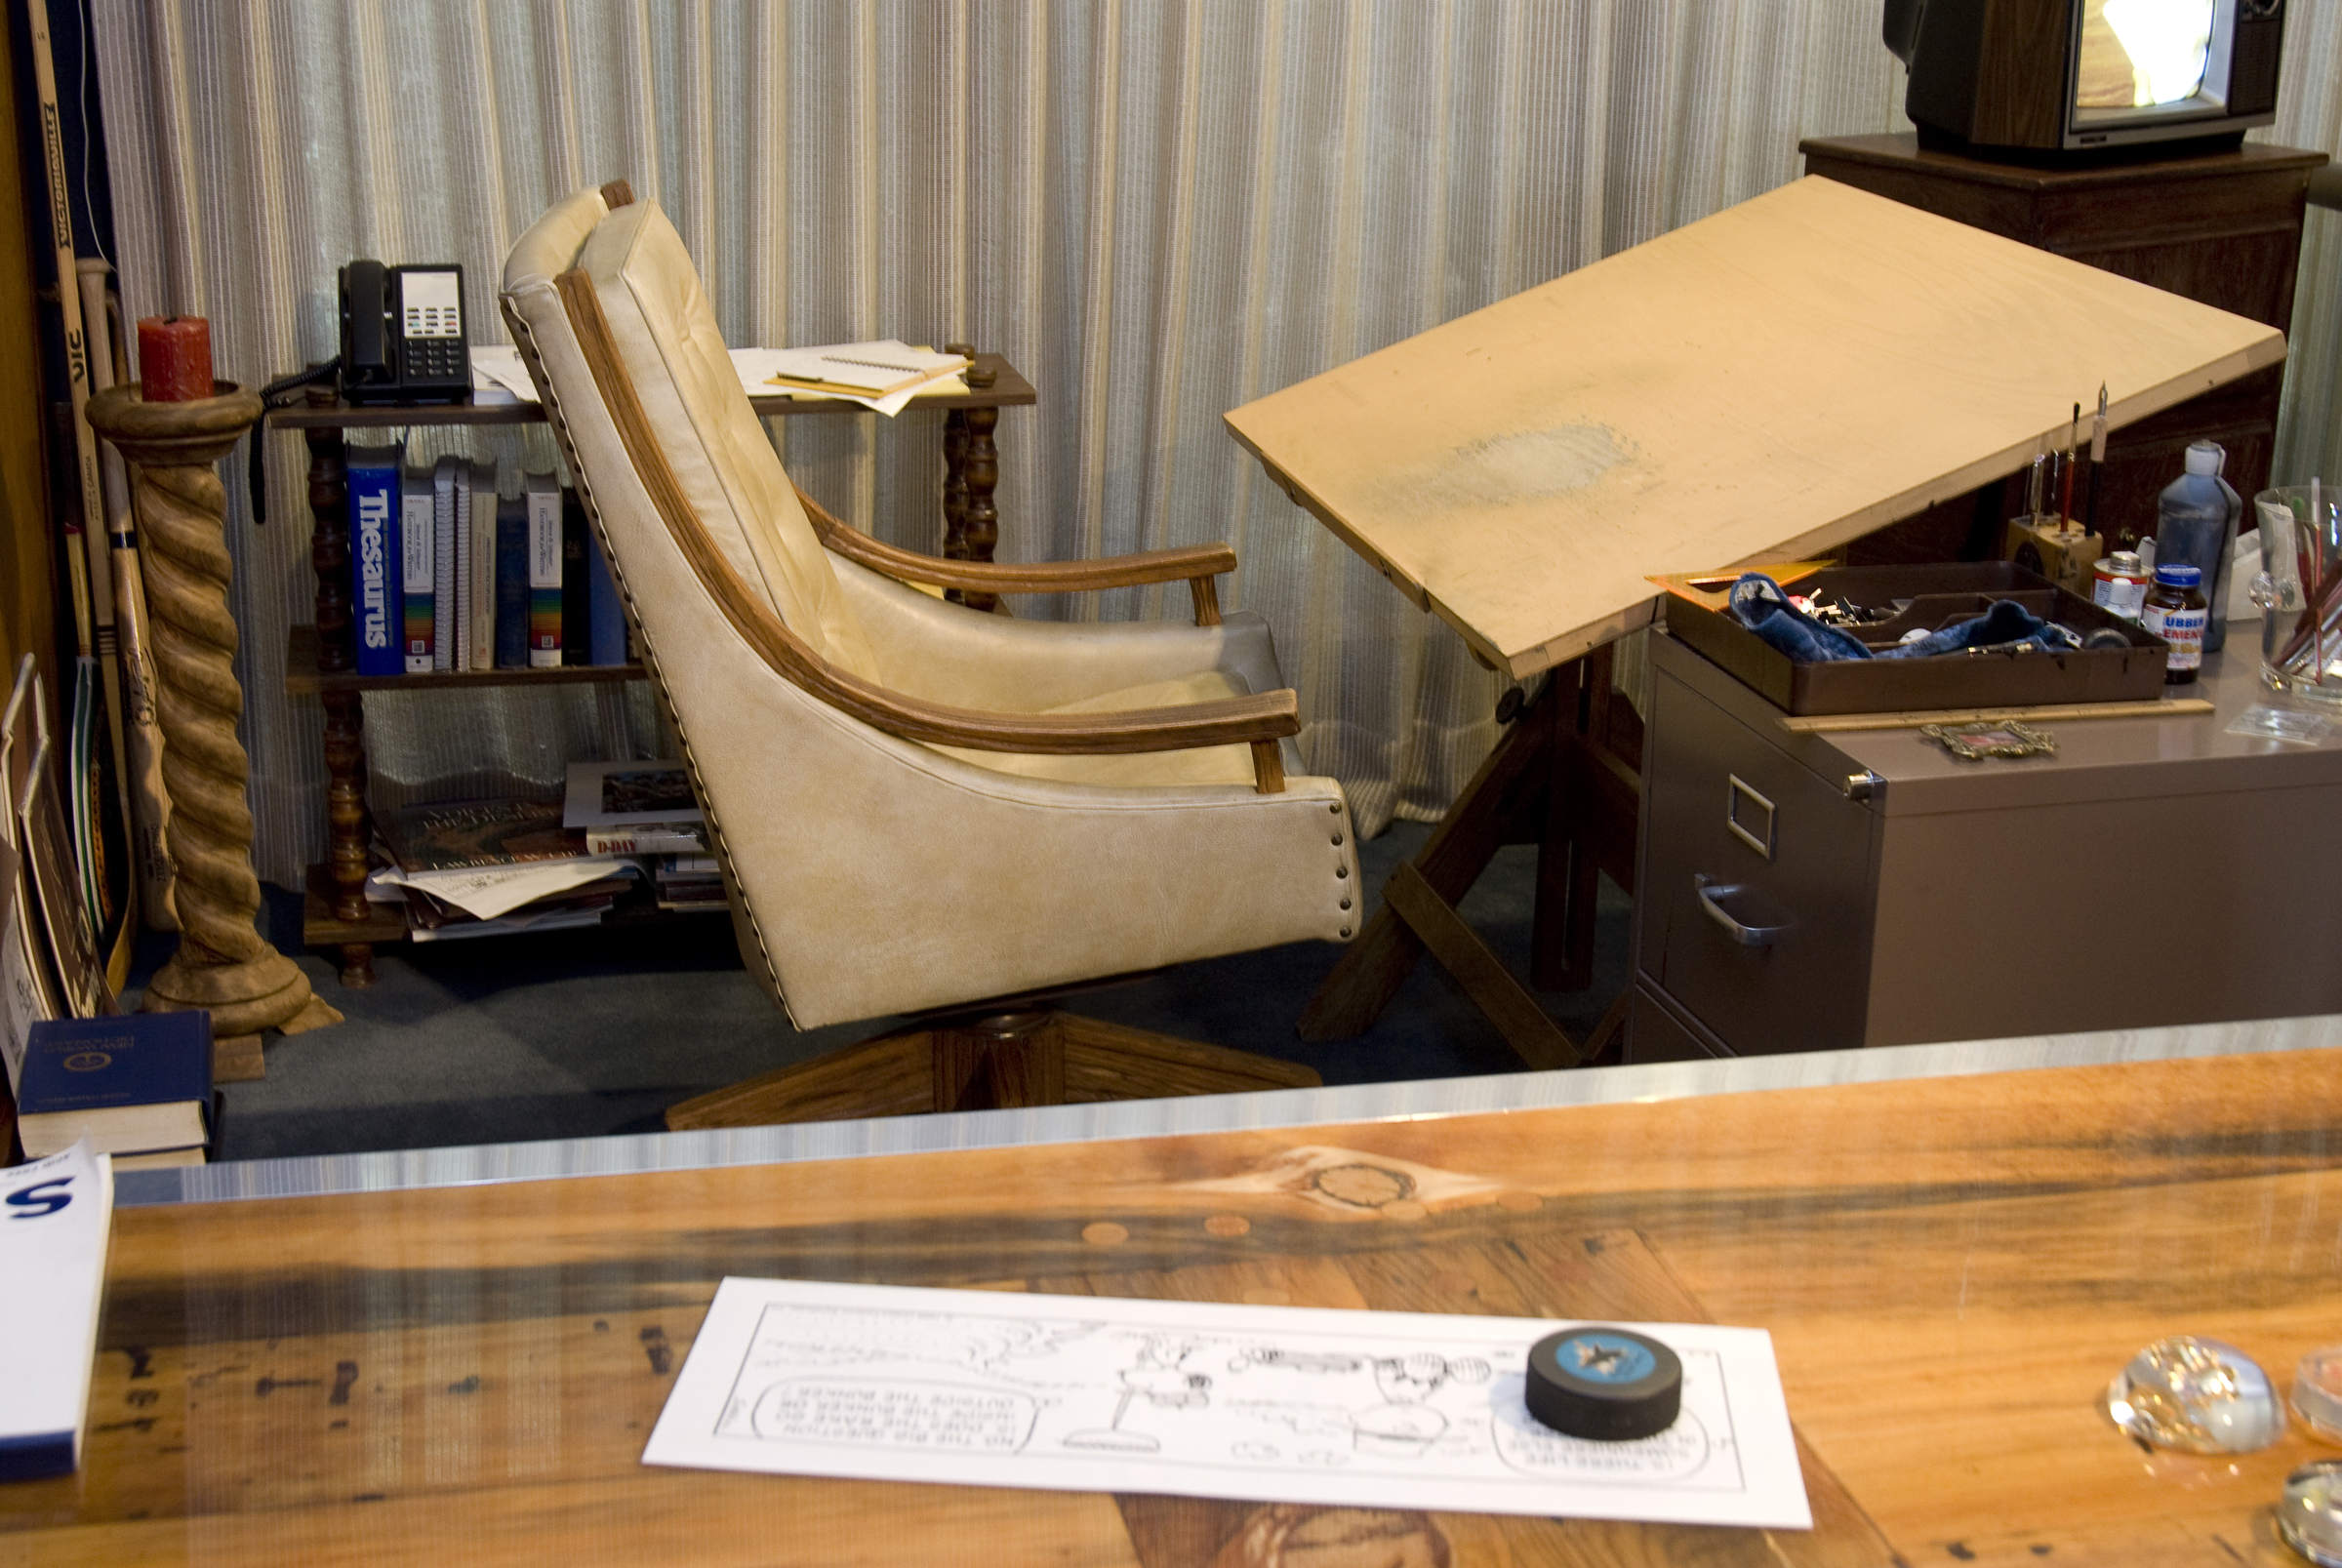 Photo by DJ Ashton, courtesy of the Charles M. Schulz Museum and Research Center Recreation of Charles M. Schulz Studio